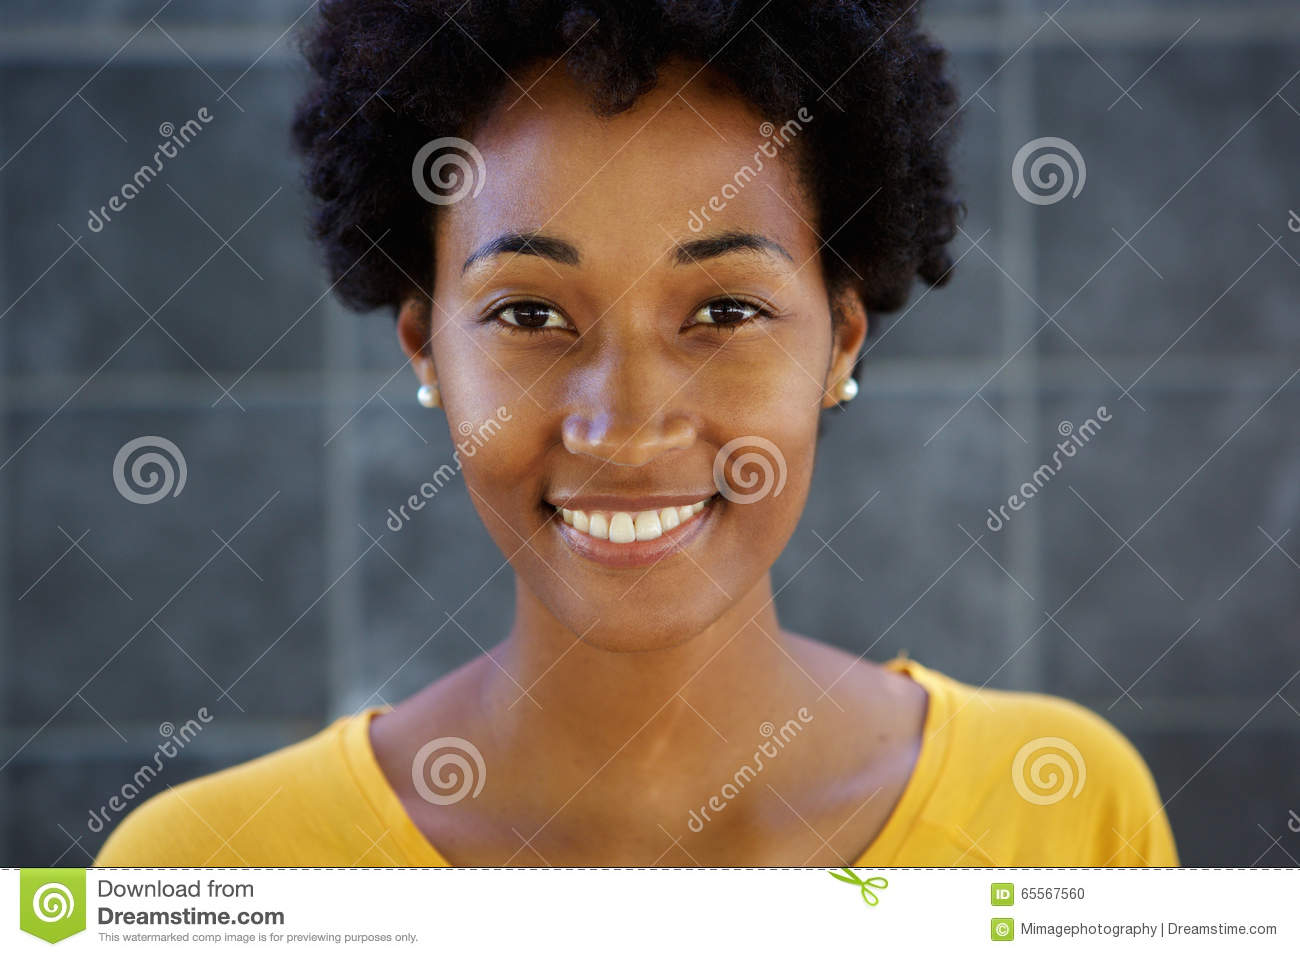 black singles in young america Norwood young america minnesota, i love to cook, i love to fish and swim i love being out doors if your a heavy drinker or drug user move on i love playing card and board games, puzzles and baking.